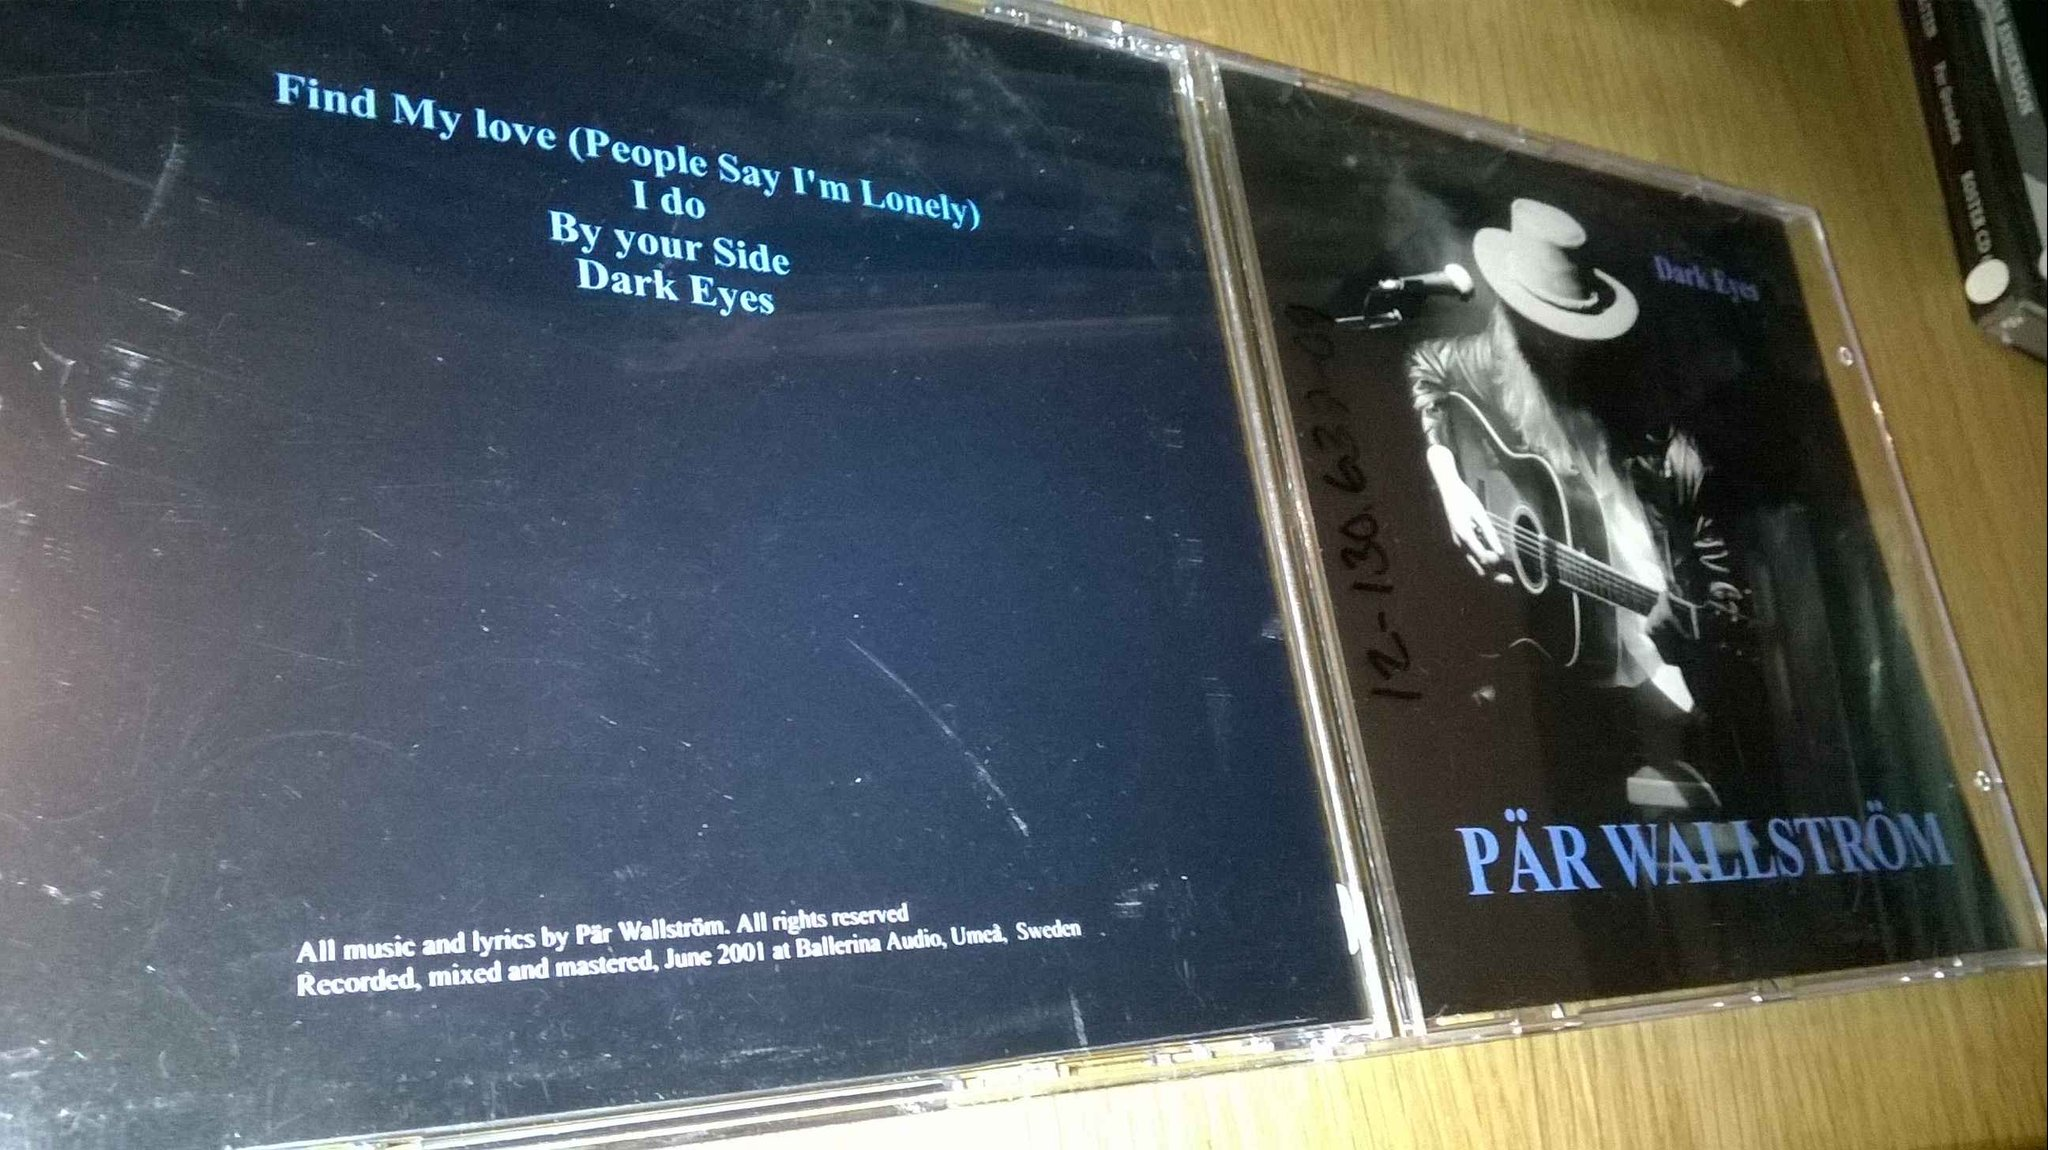 Pär Wallström - Dark Eyes, CD, very rare!